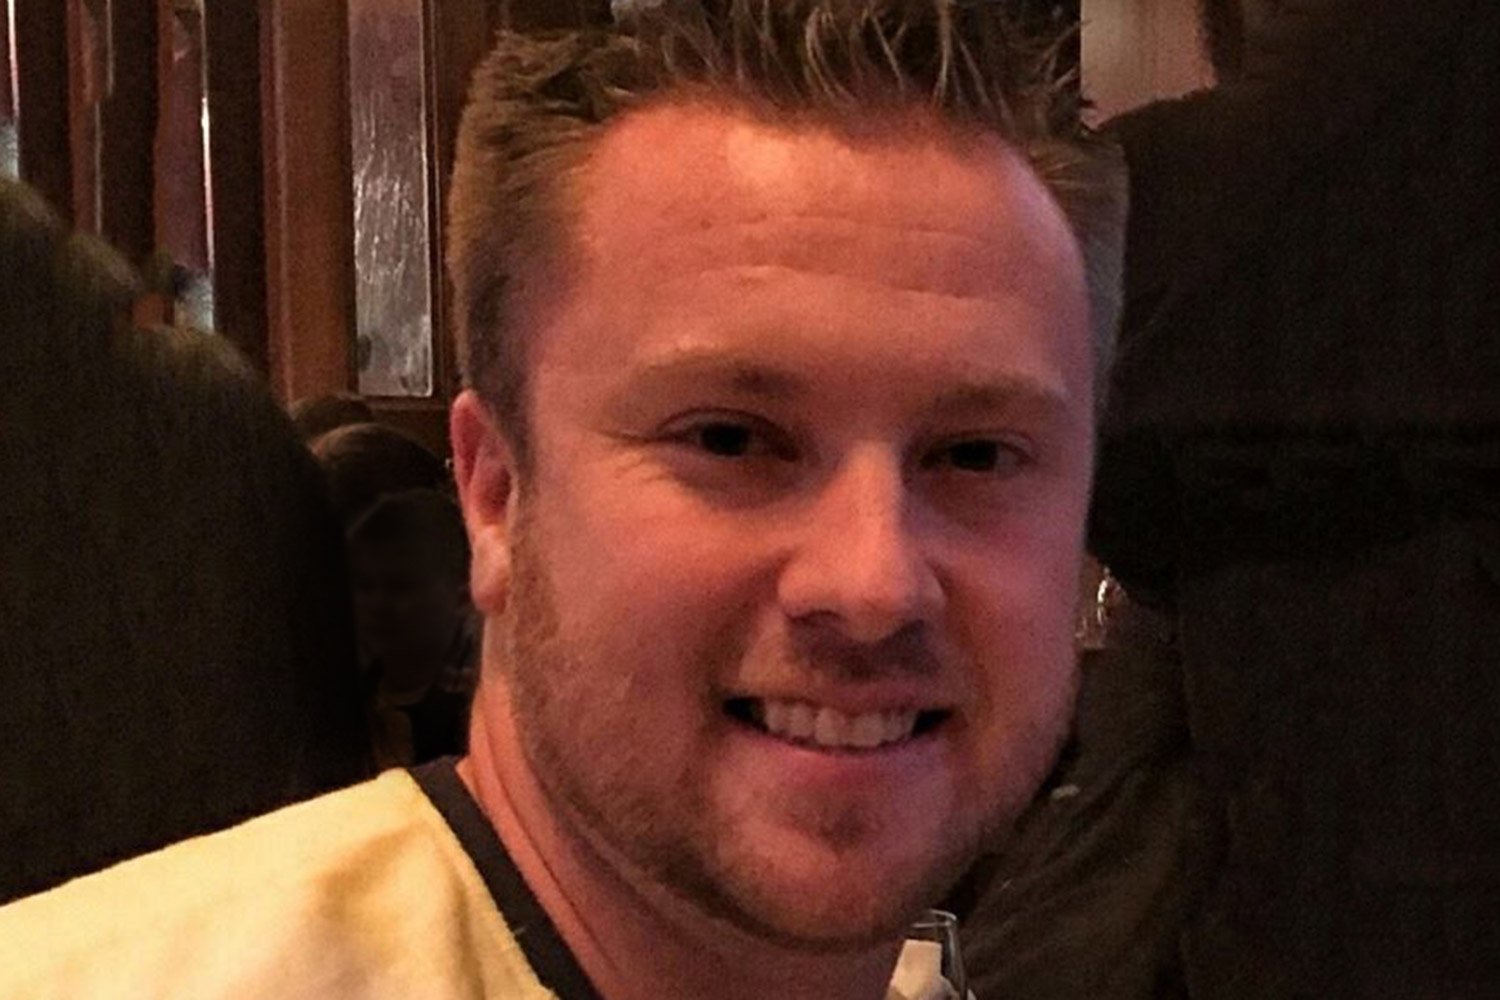 New Jersey High School Baseball Coach, 30, Dies of Coronavirus After Being Discharged from Hospital